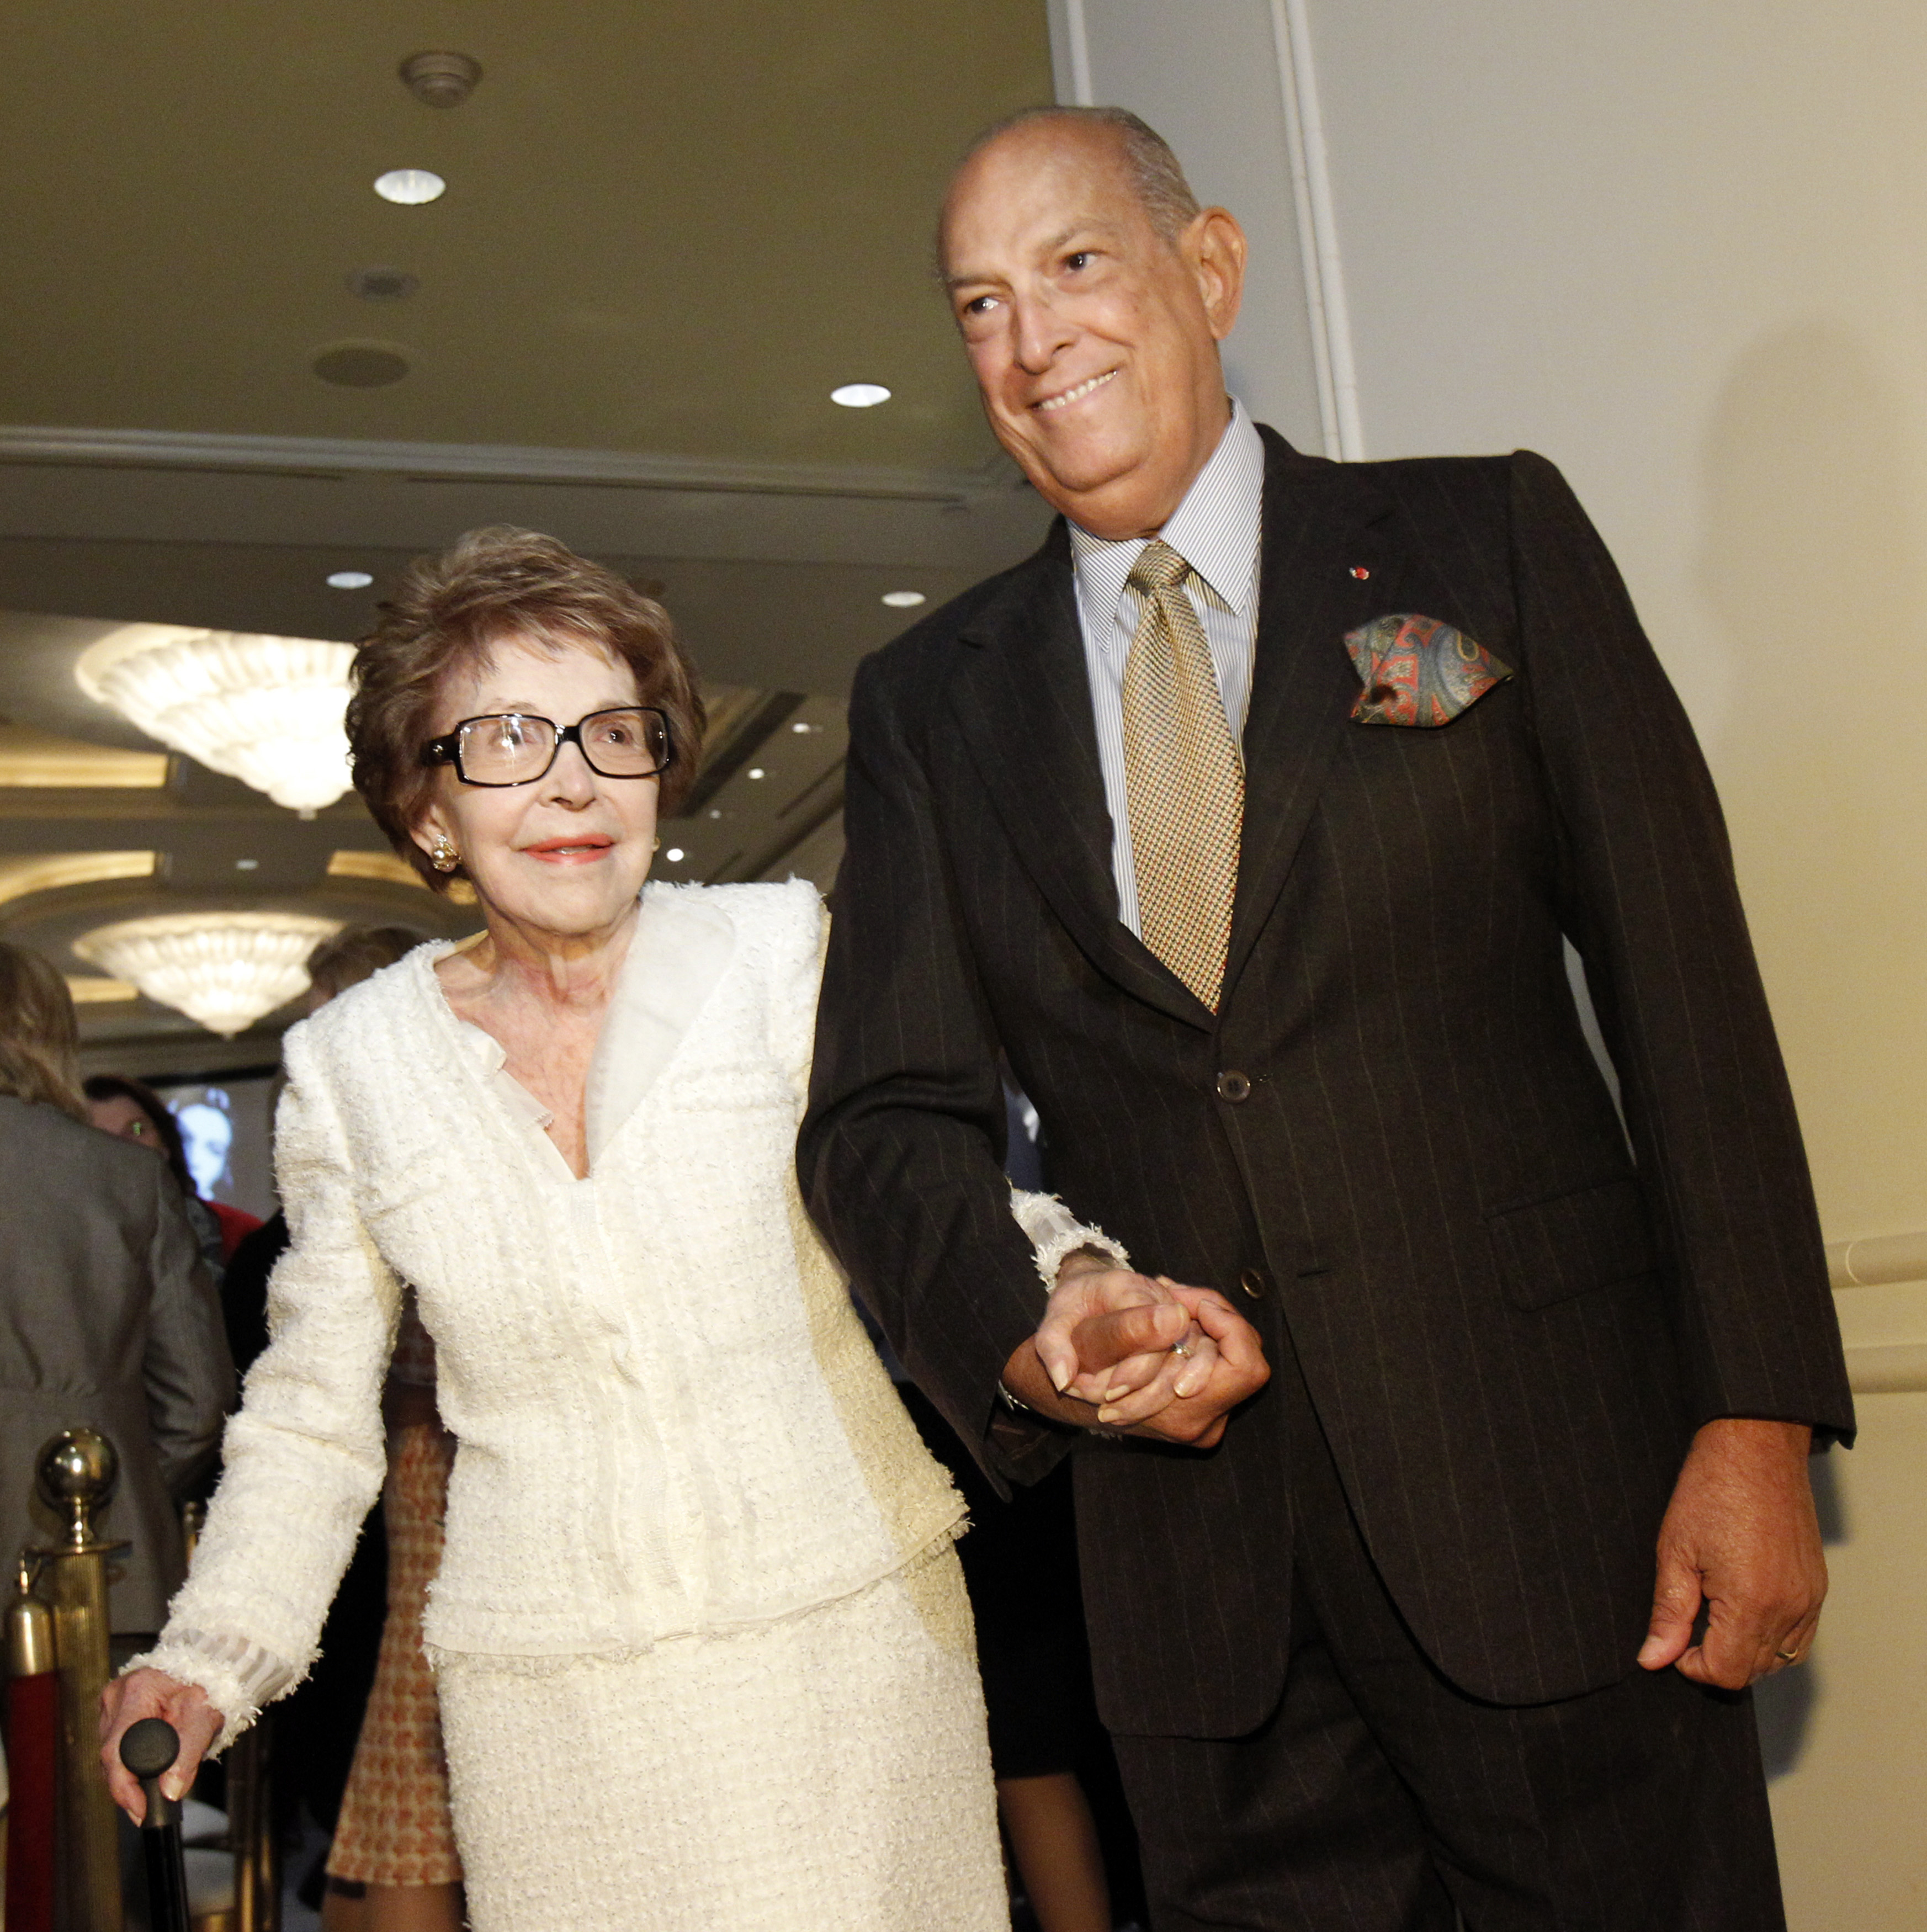 The designer with former First Lady Nancy Reagan. REUTERS/Mario Anzuoni.